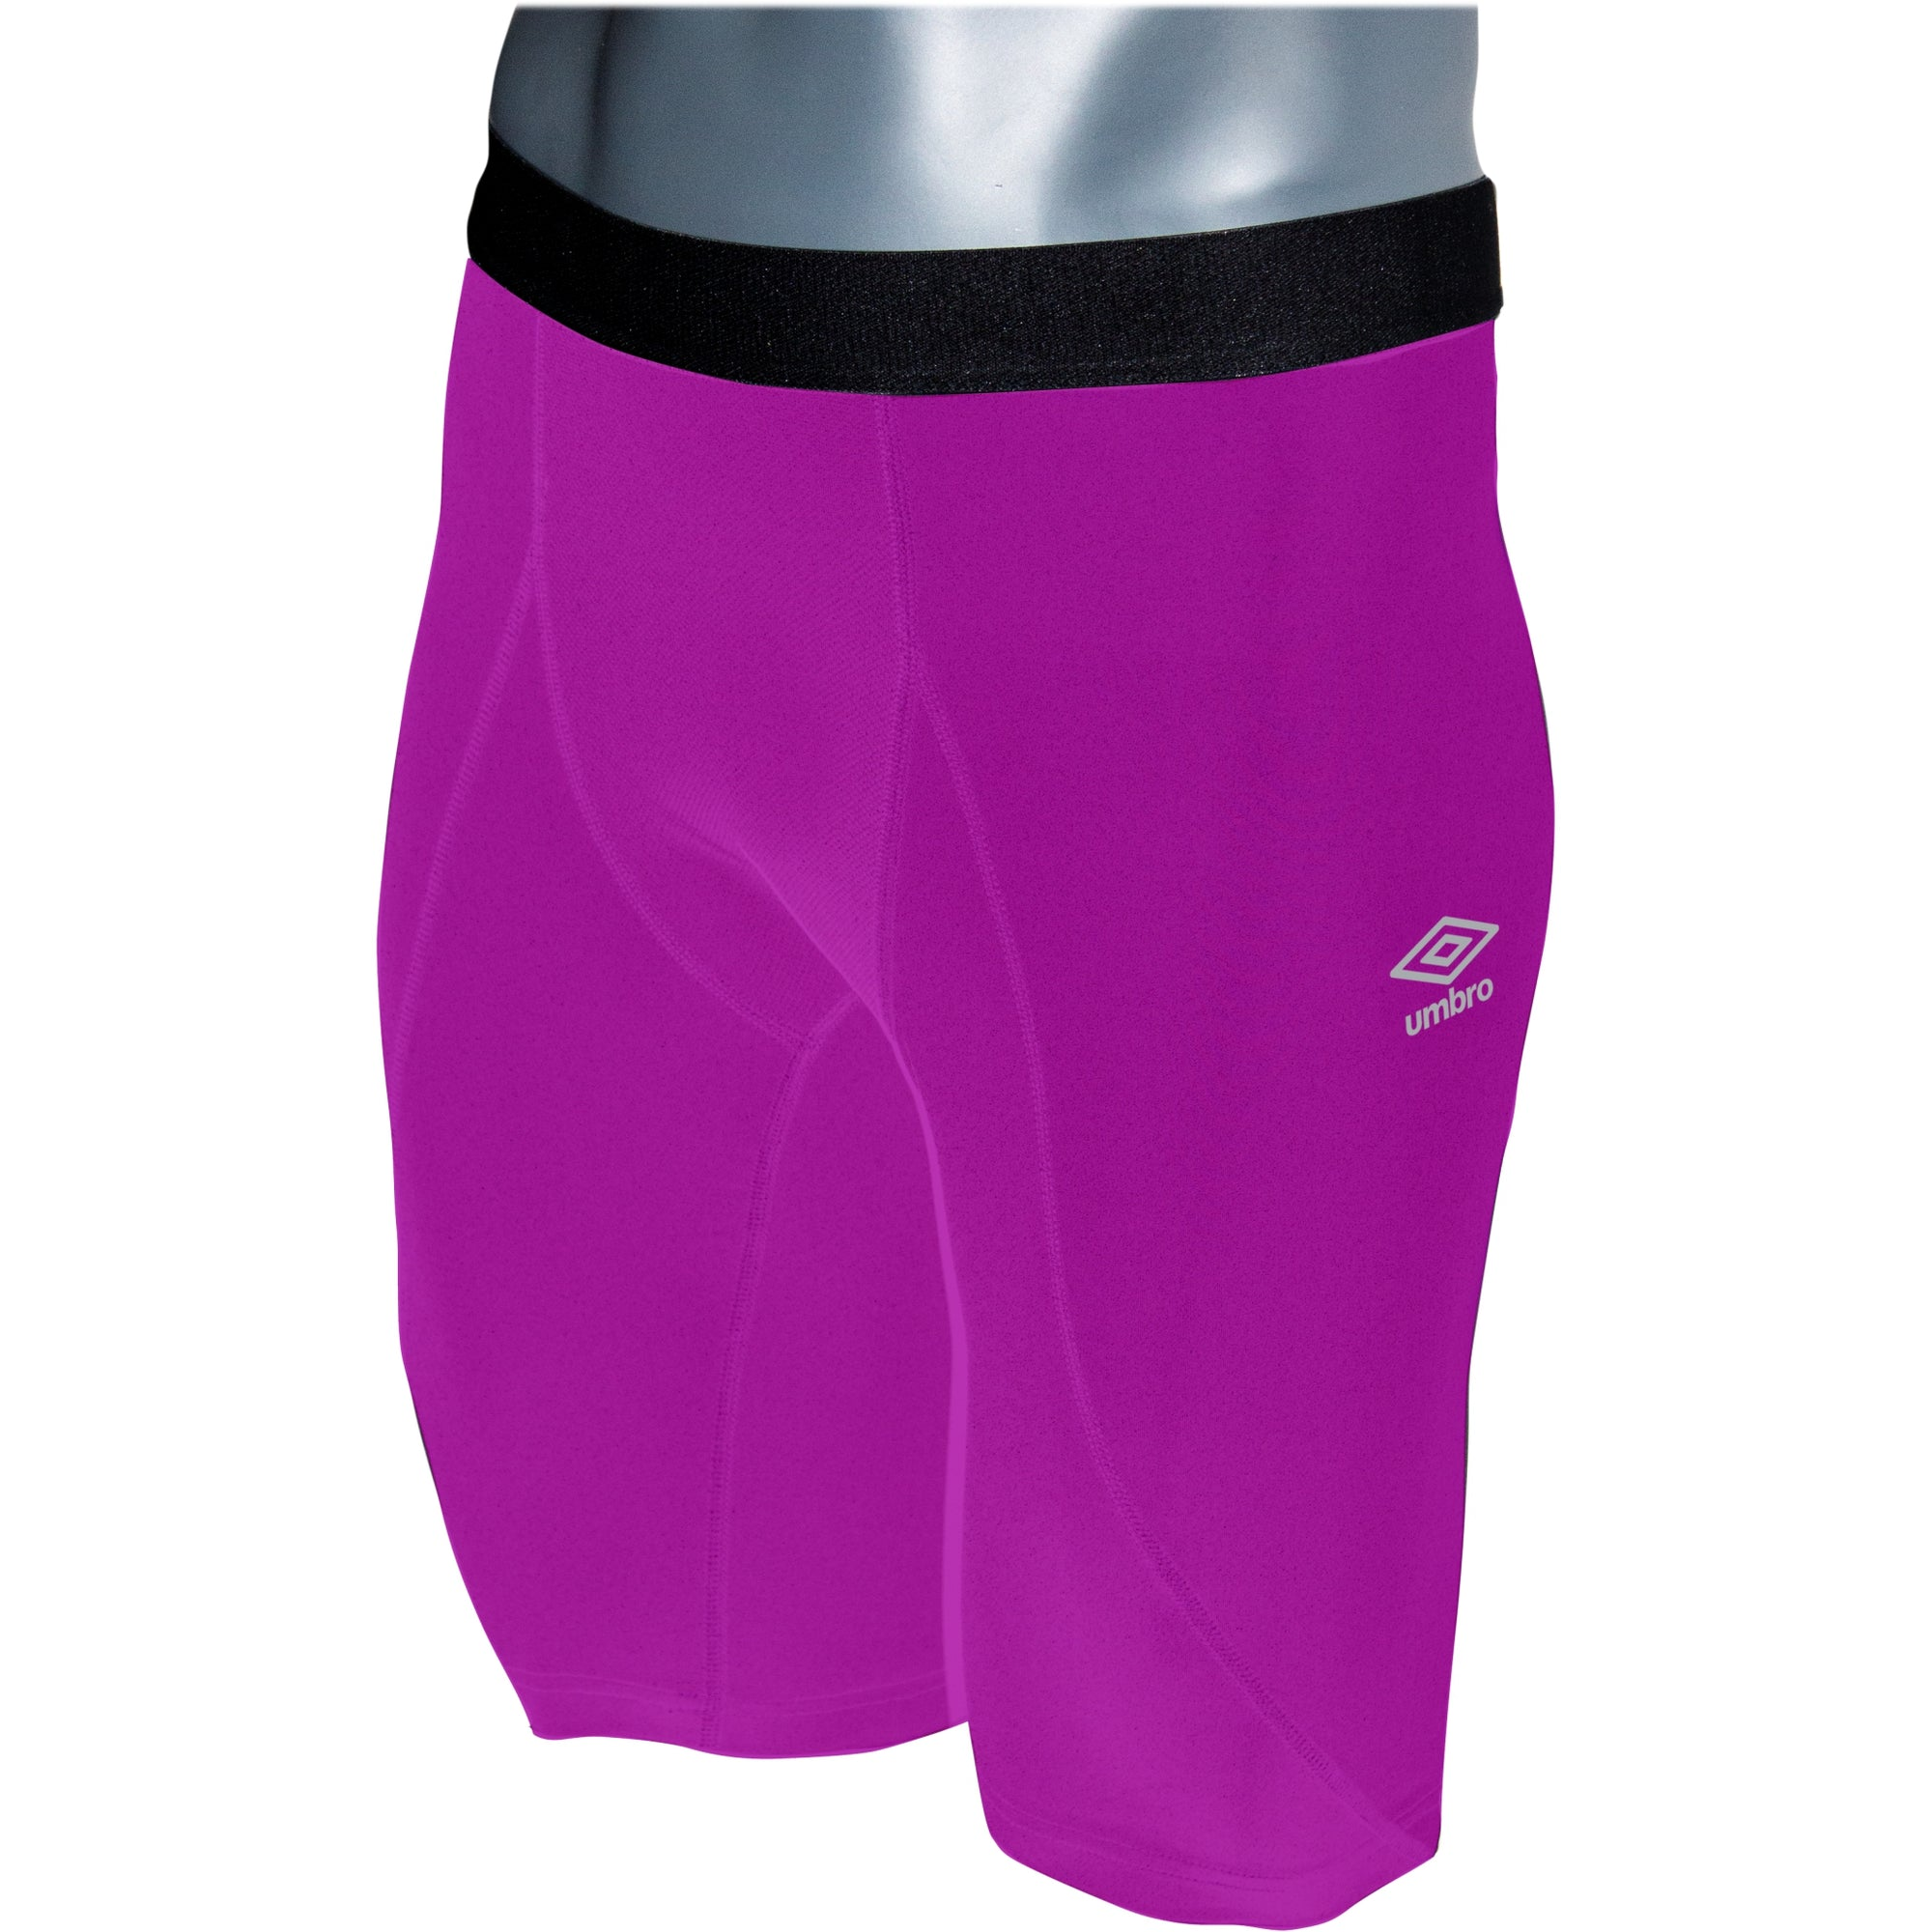 Umbro Elite Player Power Short in purple cactus with black waist band